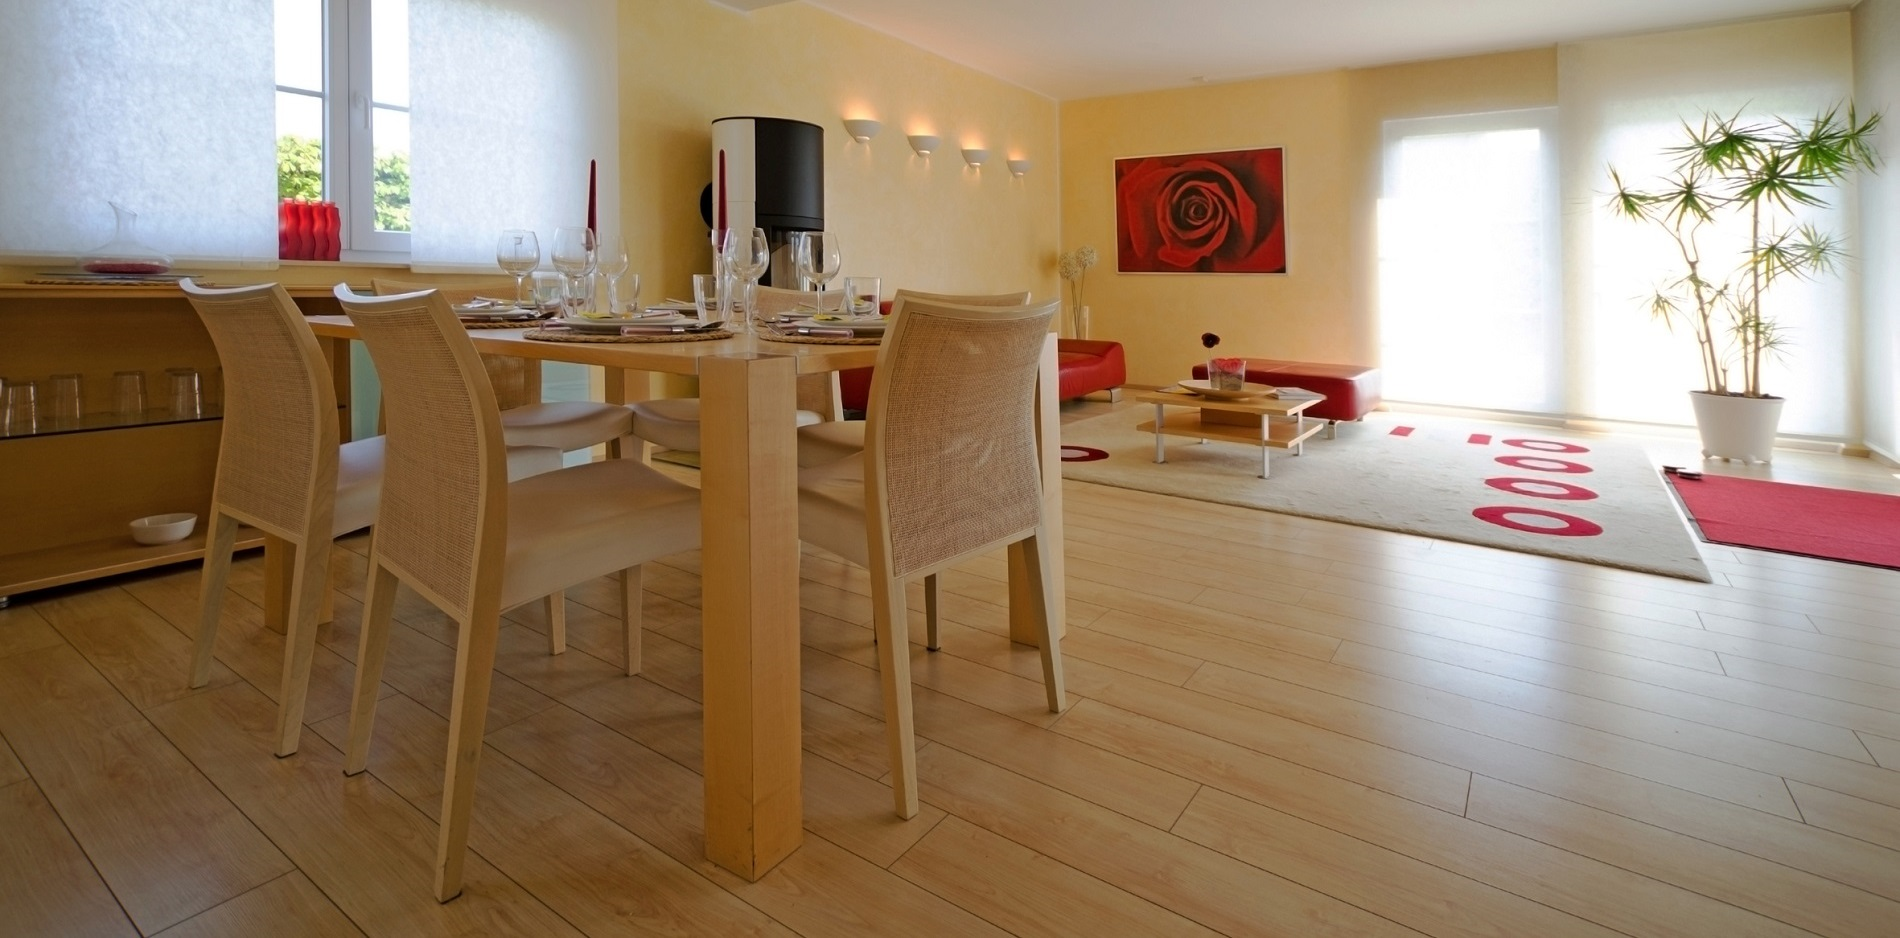 chasseur-immobilier-france-appartement-residentiel-achat-location-gestion-sejour